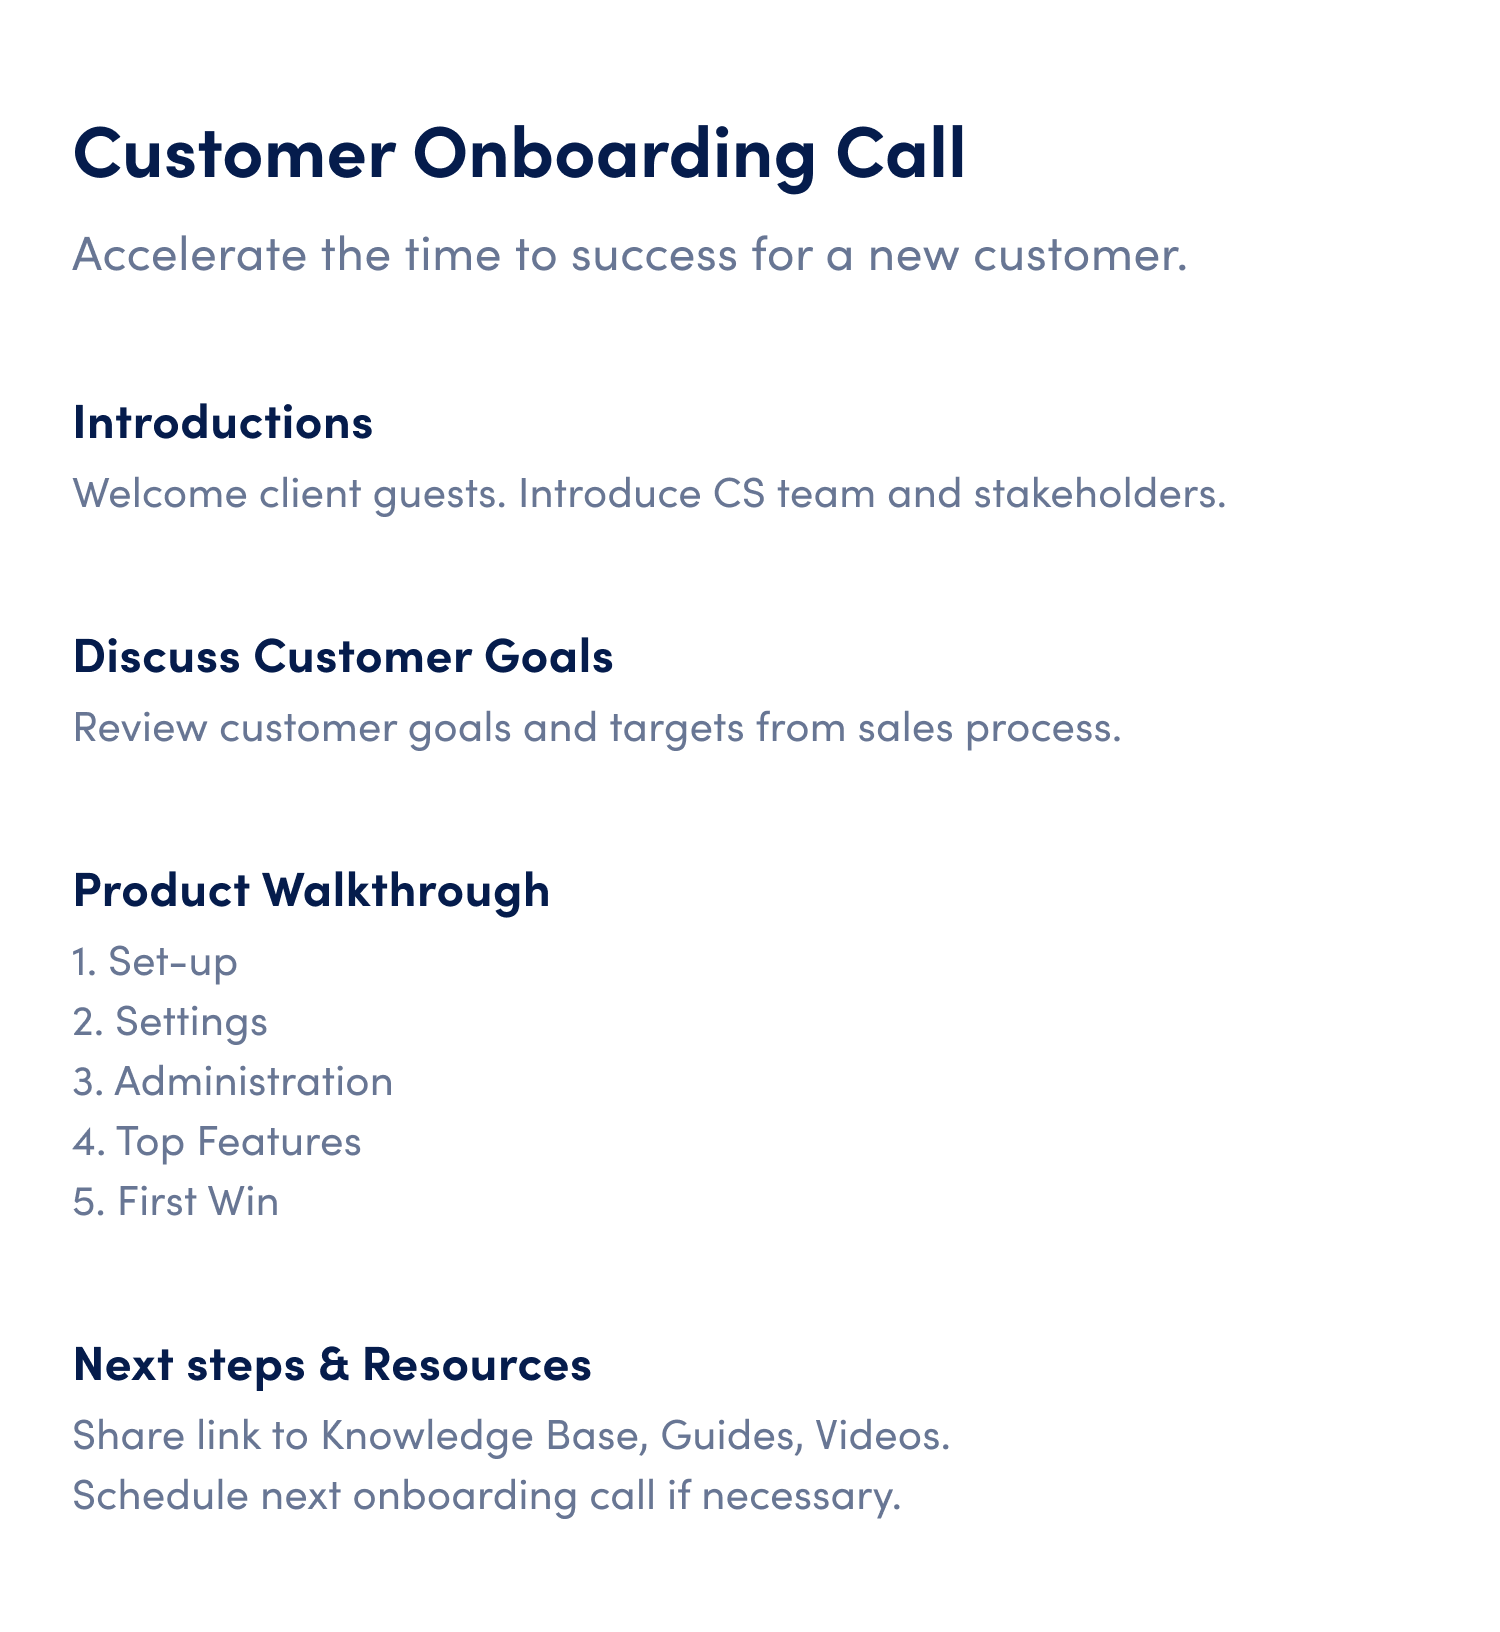 customer onboarding call meeting agenda template